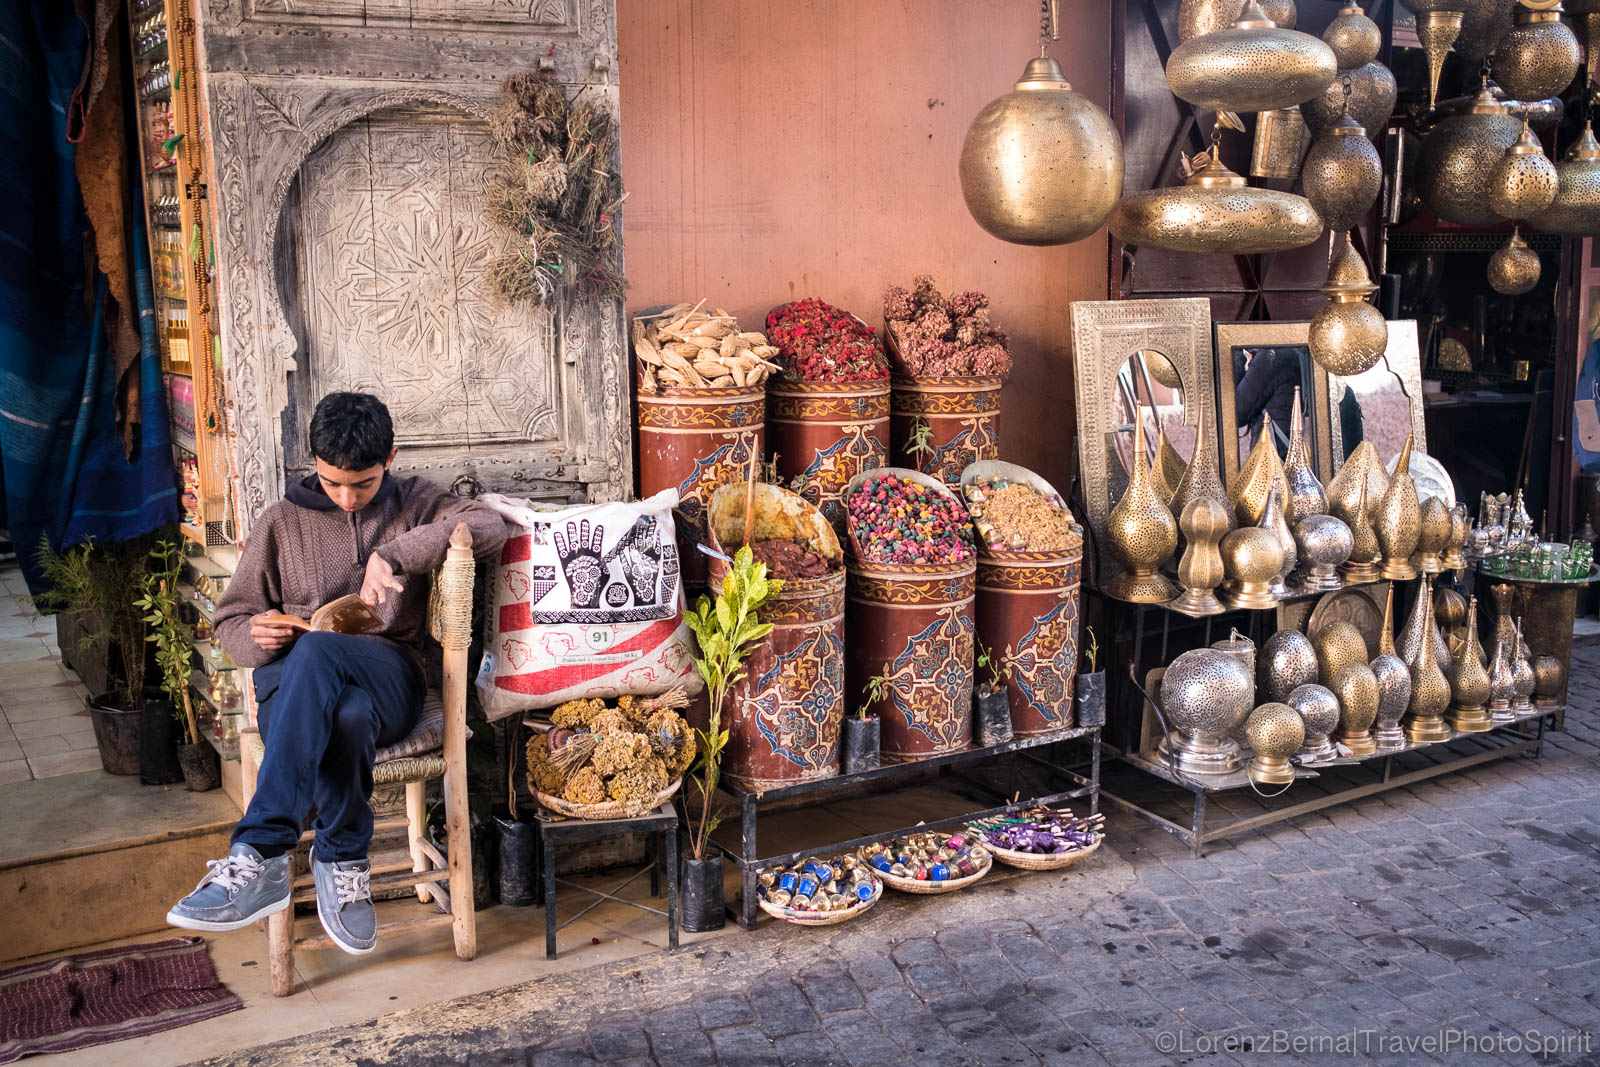 Afternoon in Marrakech Medina : boy at his stall playing on his phone while waiting for customers